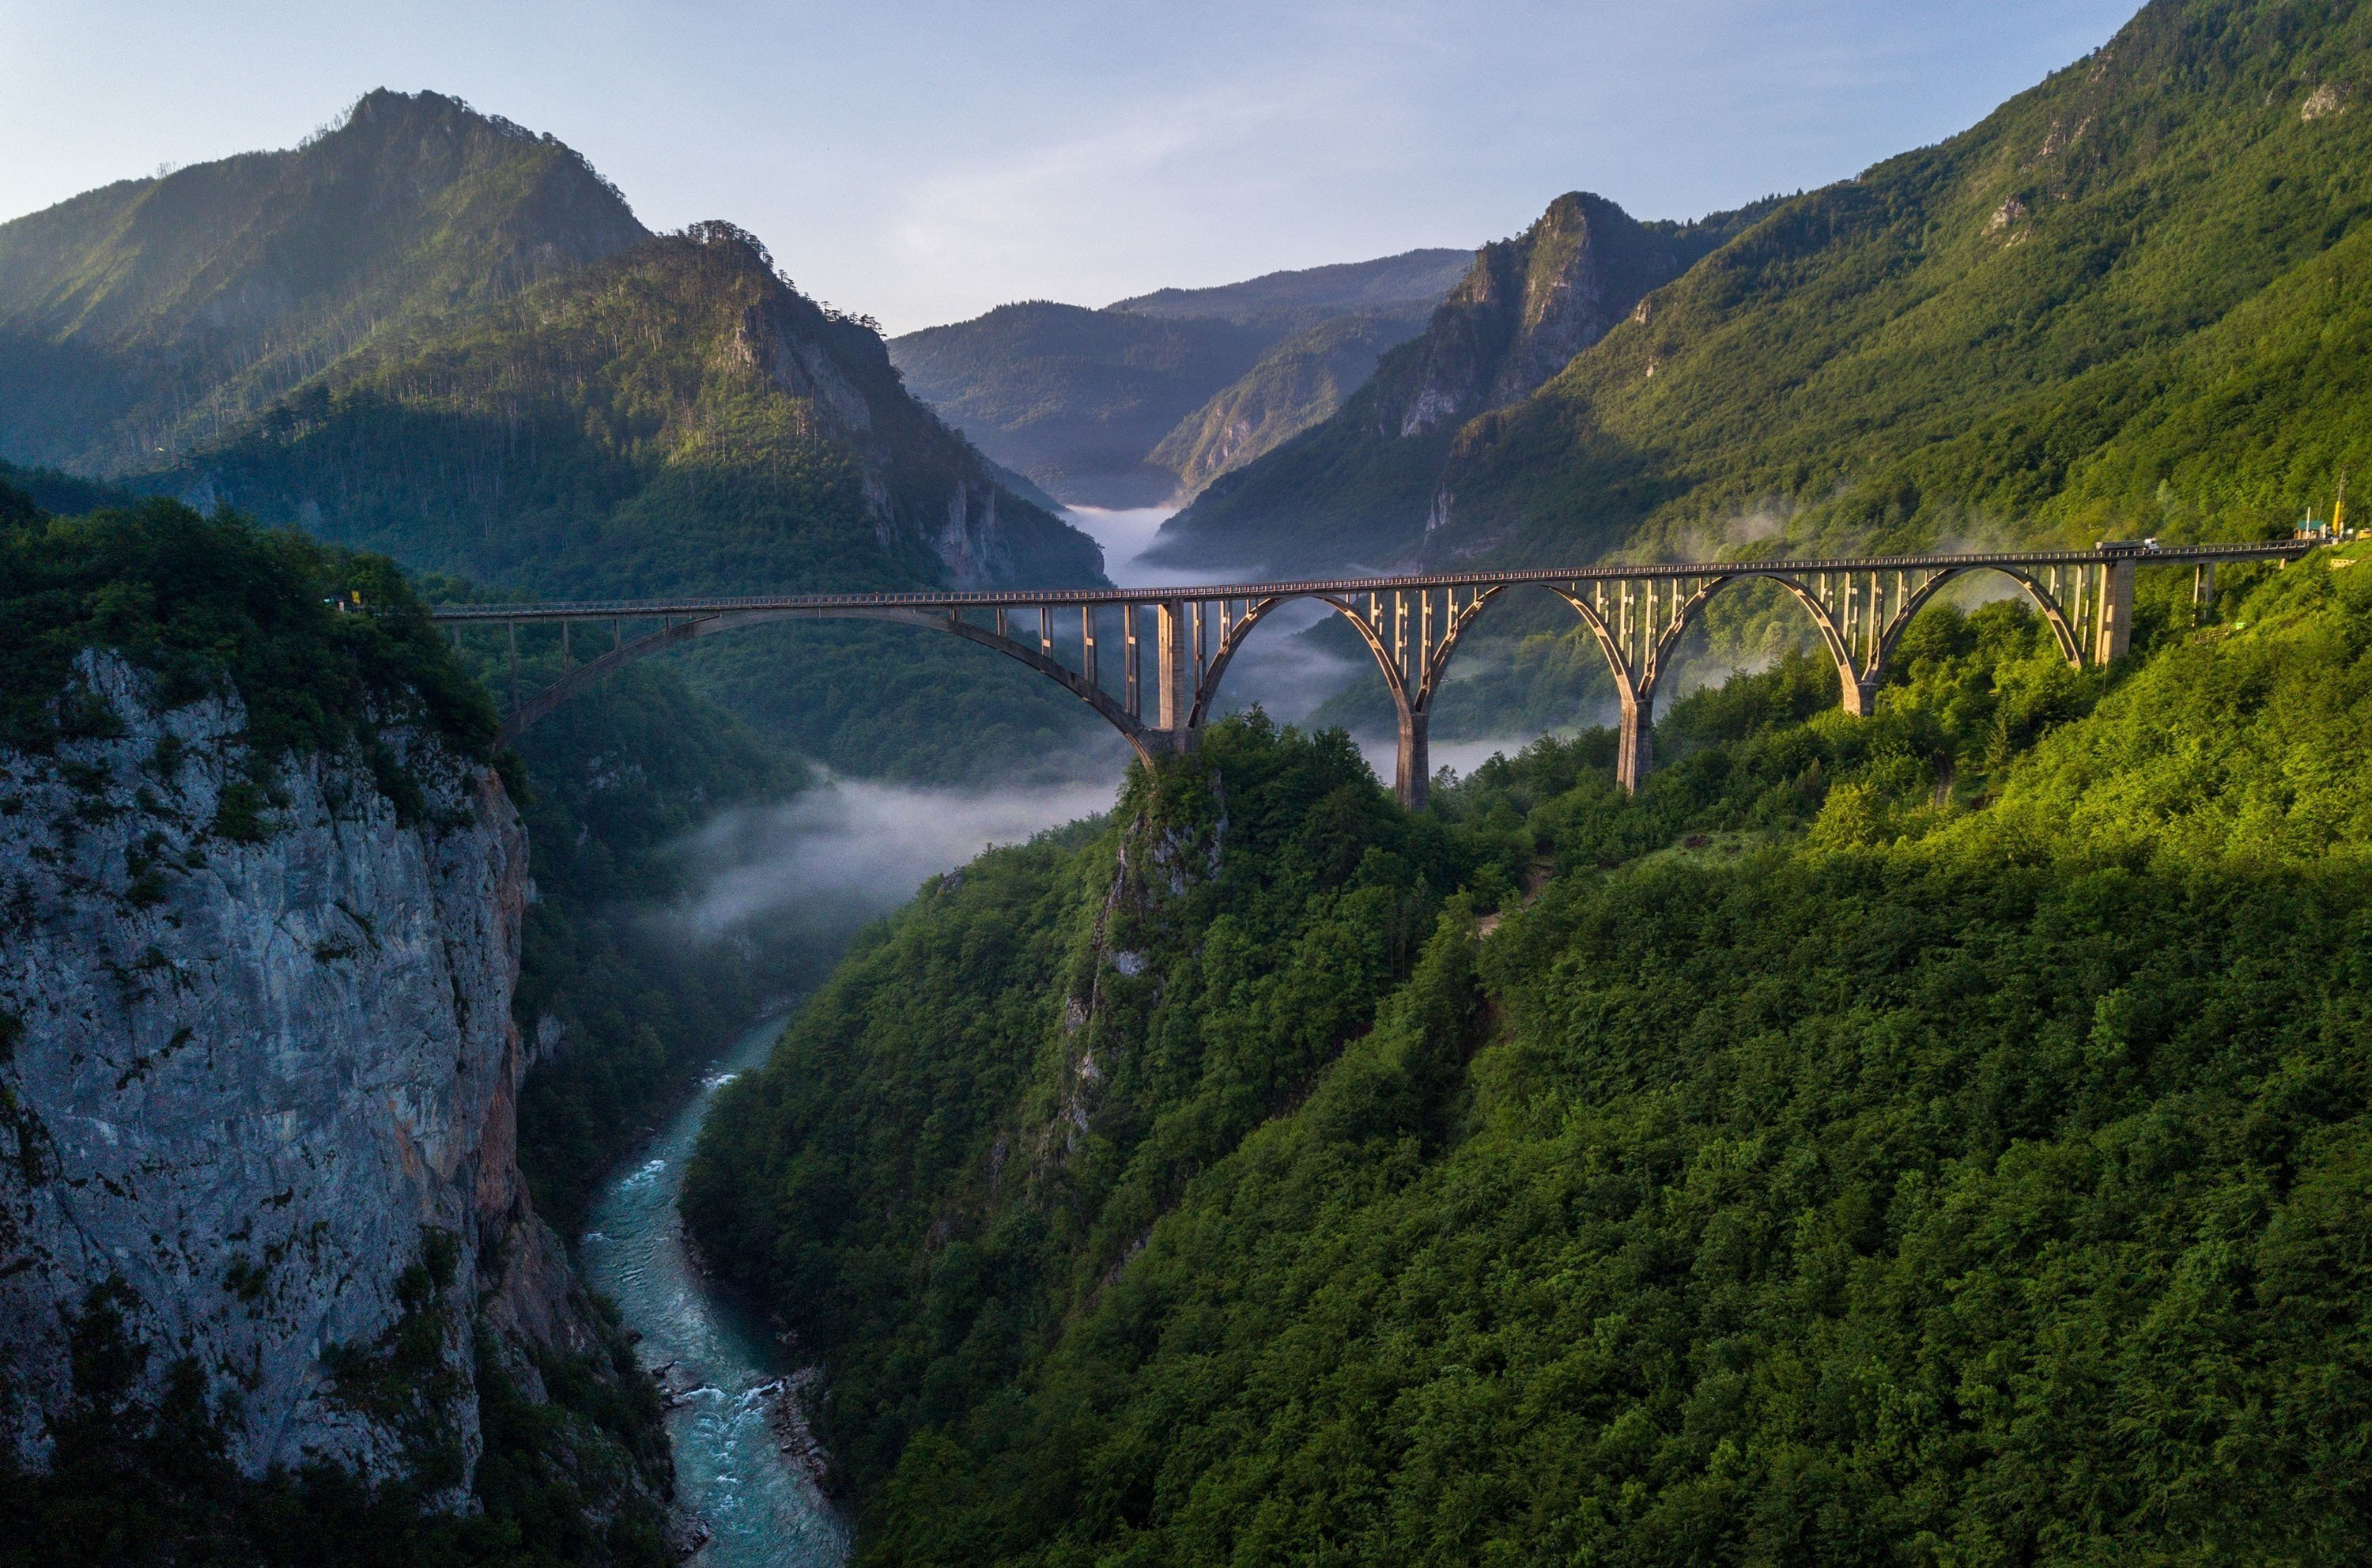 On a beautiful misty morning, the Durdevica bridge stands over the River Tara, Montenegro. (Shutterstock Photo)